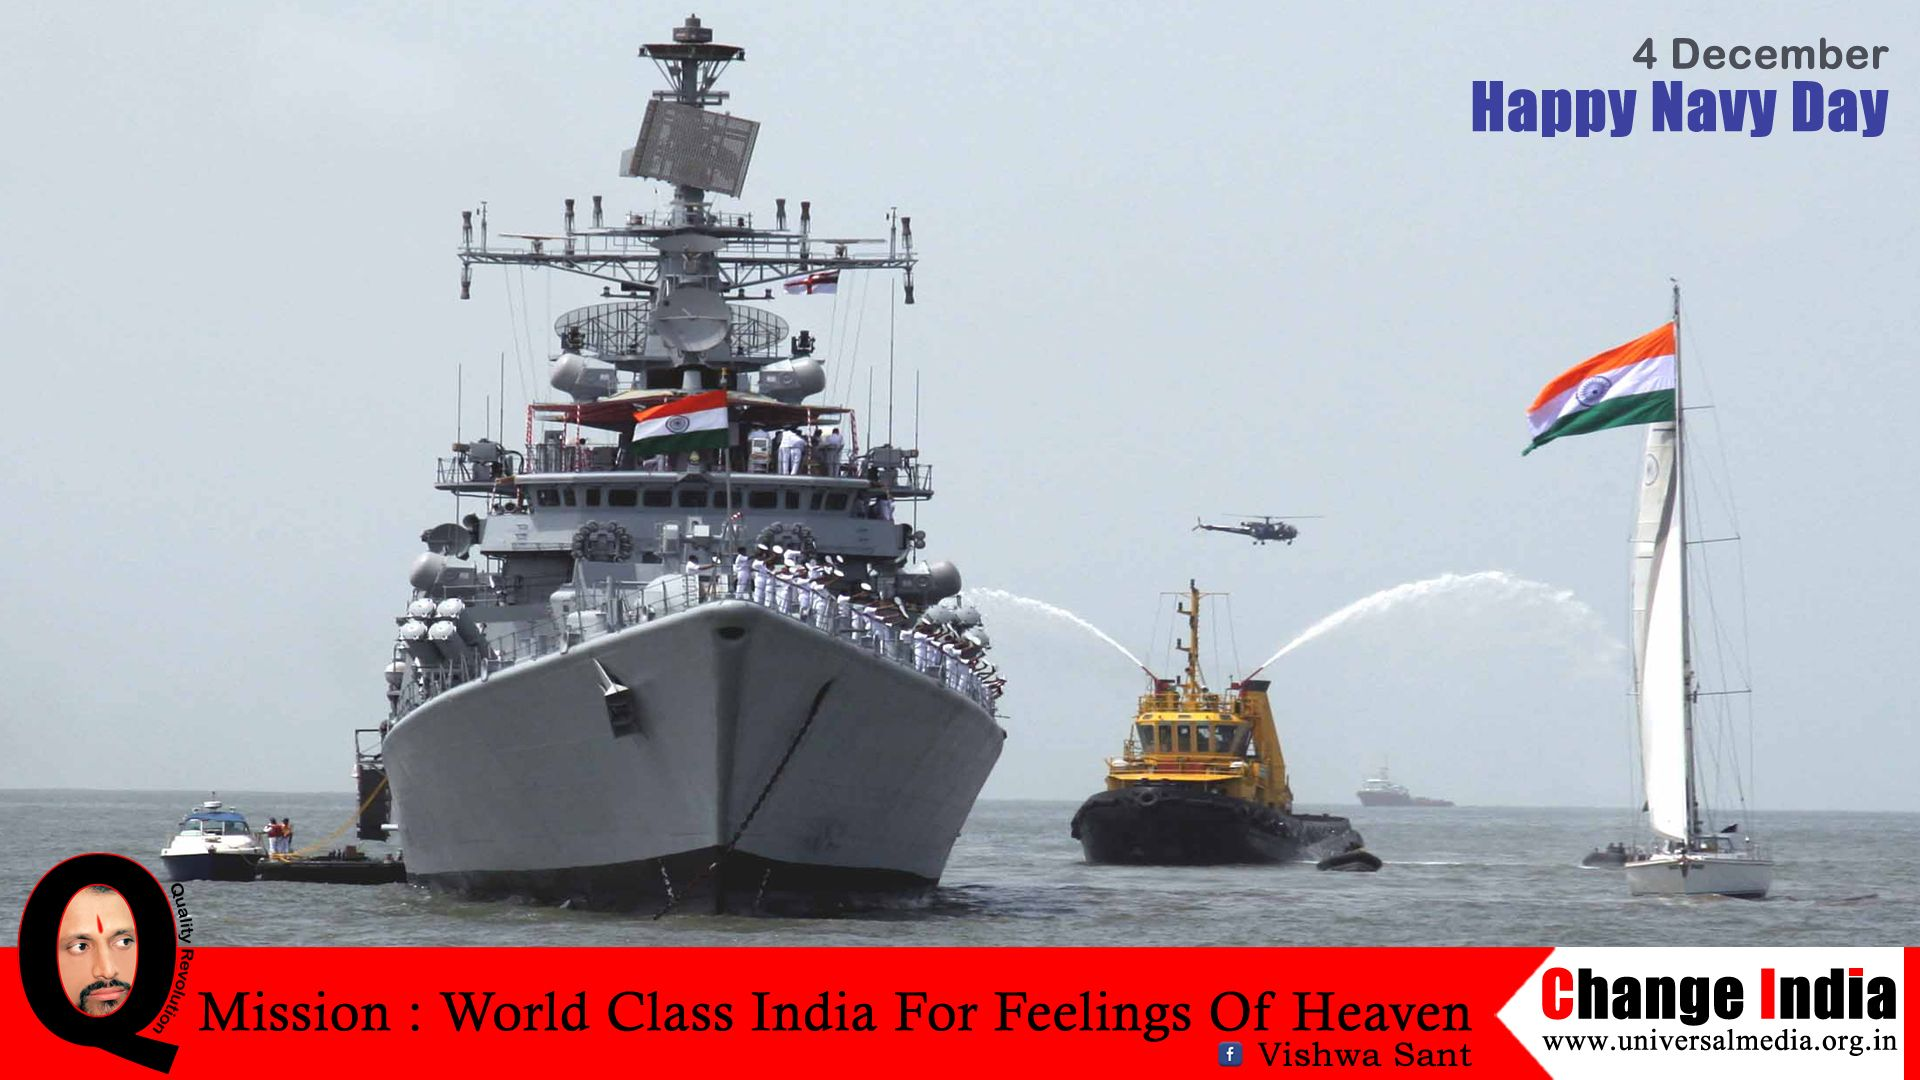 Pin By Universal Media On Festivals Navy Day Indian Navy Indian Navy Day